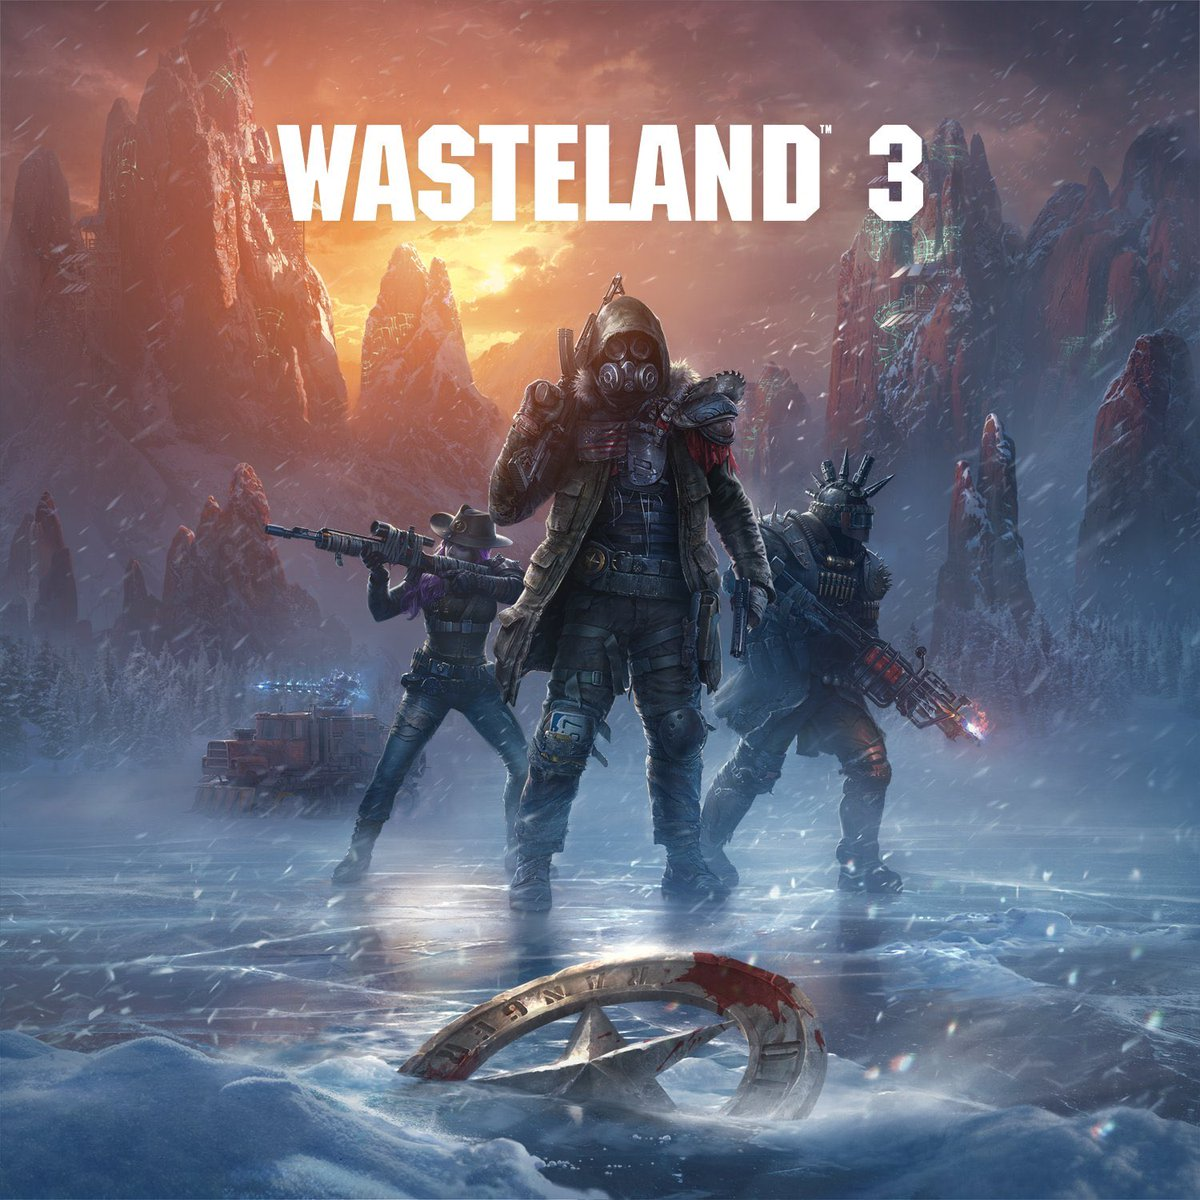 Wasteland 3 received a fresh keyart. The new RPG by inXile entertainment, an Xbox Game Studio, will release May 19. Available with Xbox Game Pass for console and PC on Day One.